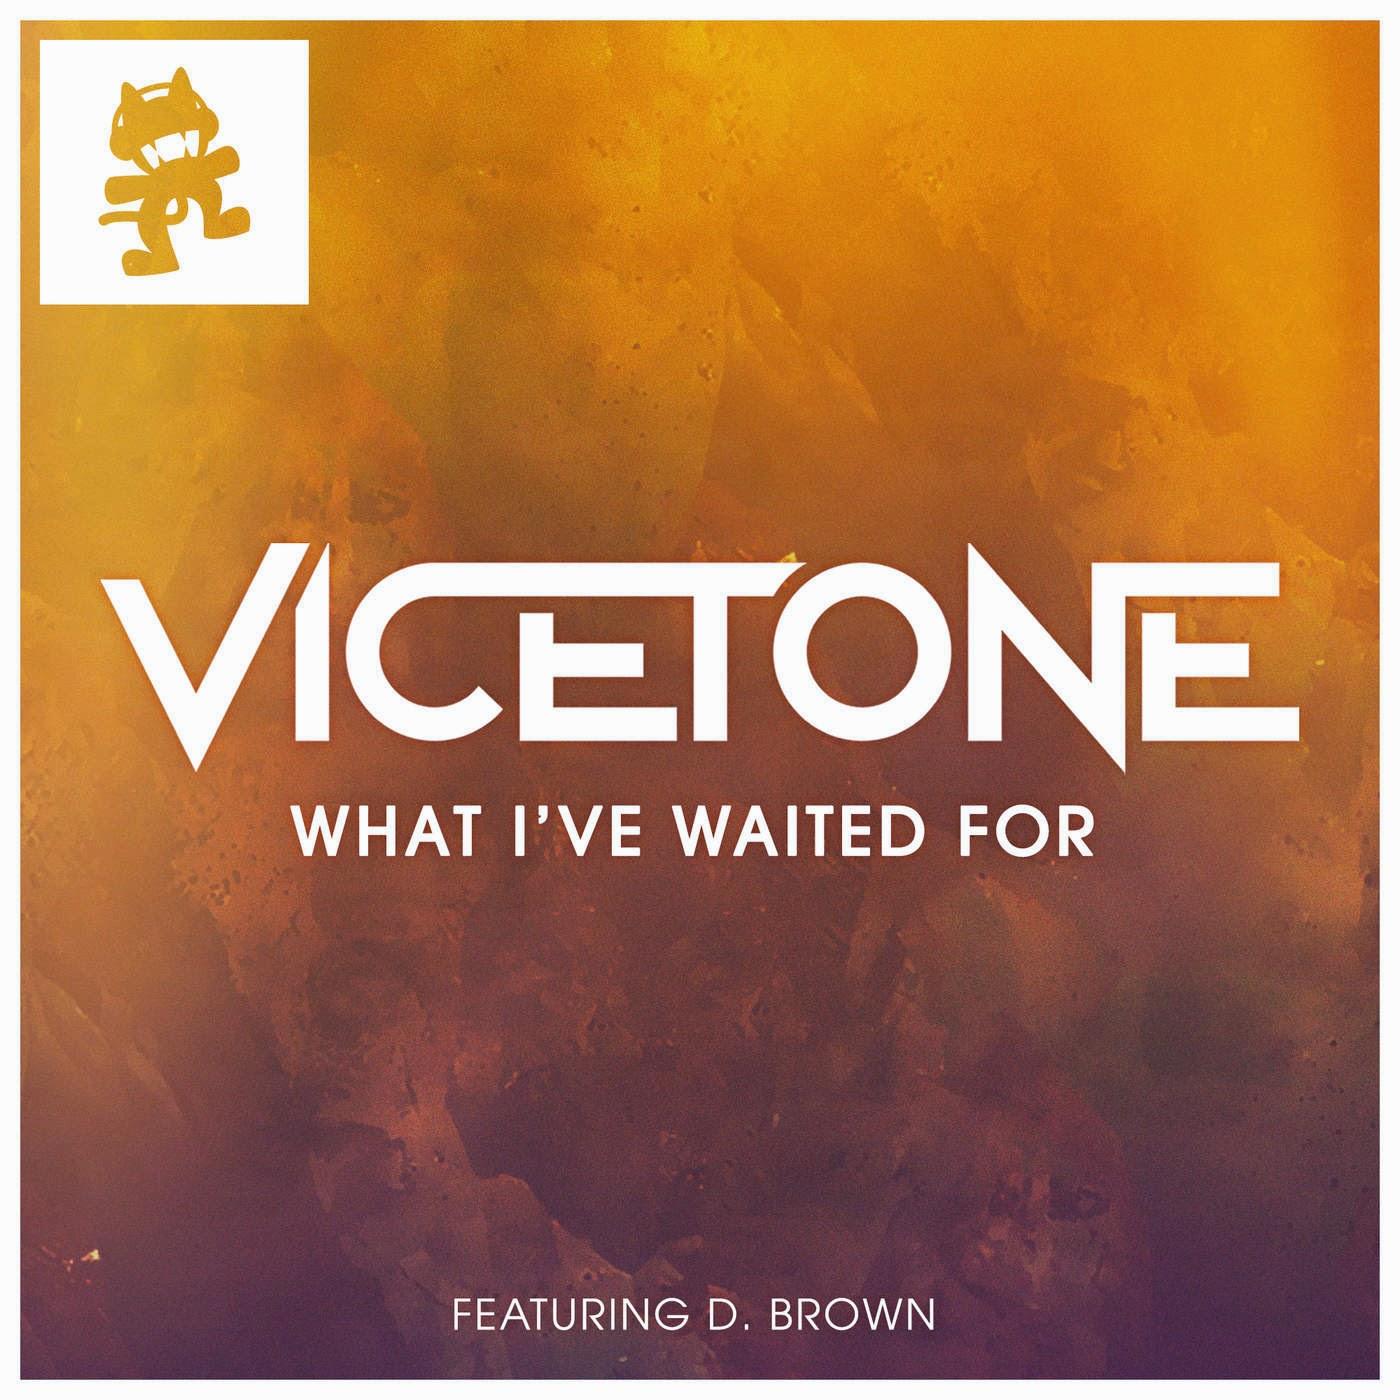 Vicetone - What I've Waited for (feat. D. Brown)  Cover